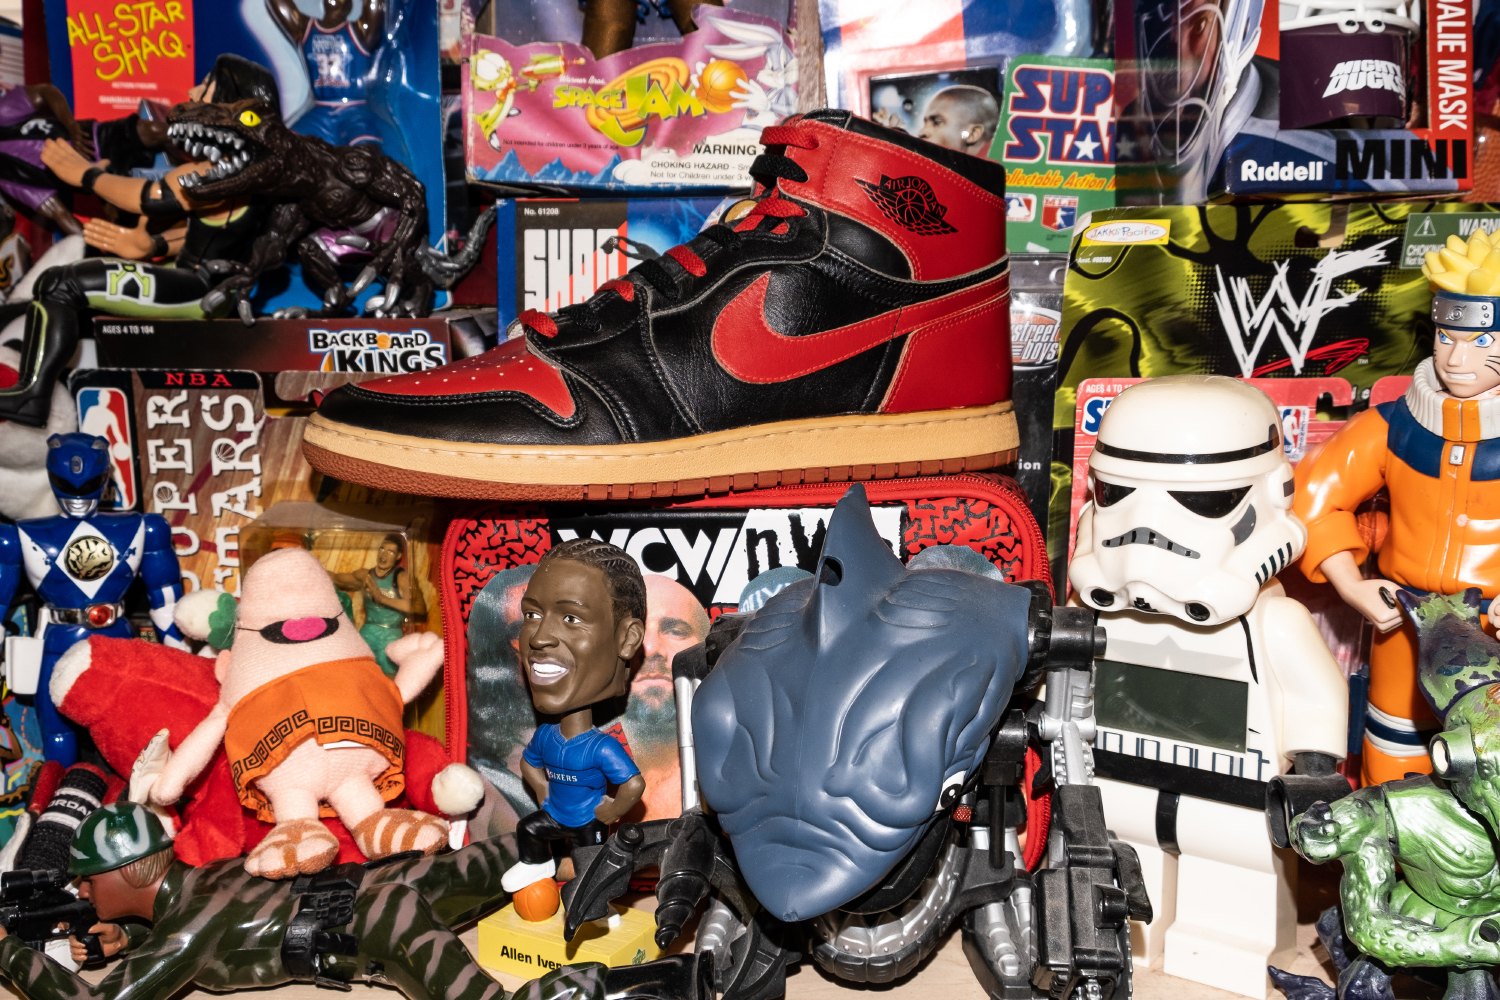 Vice's Jordan 1 Player Exclusive sample shoe is seen in an alley on Monday, June 24, 2019. (Wyatt Dlouhy/The Daily Iowan)